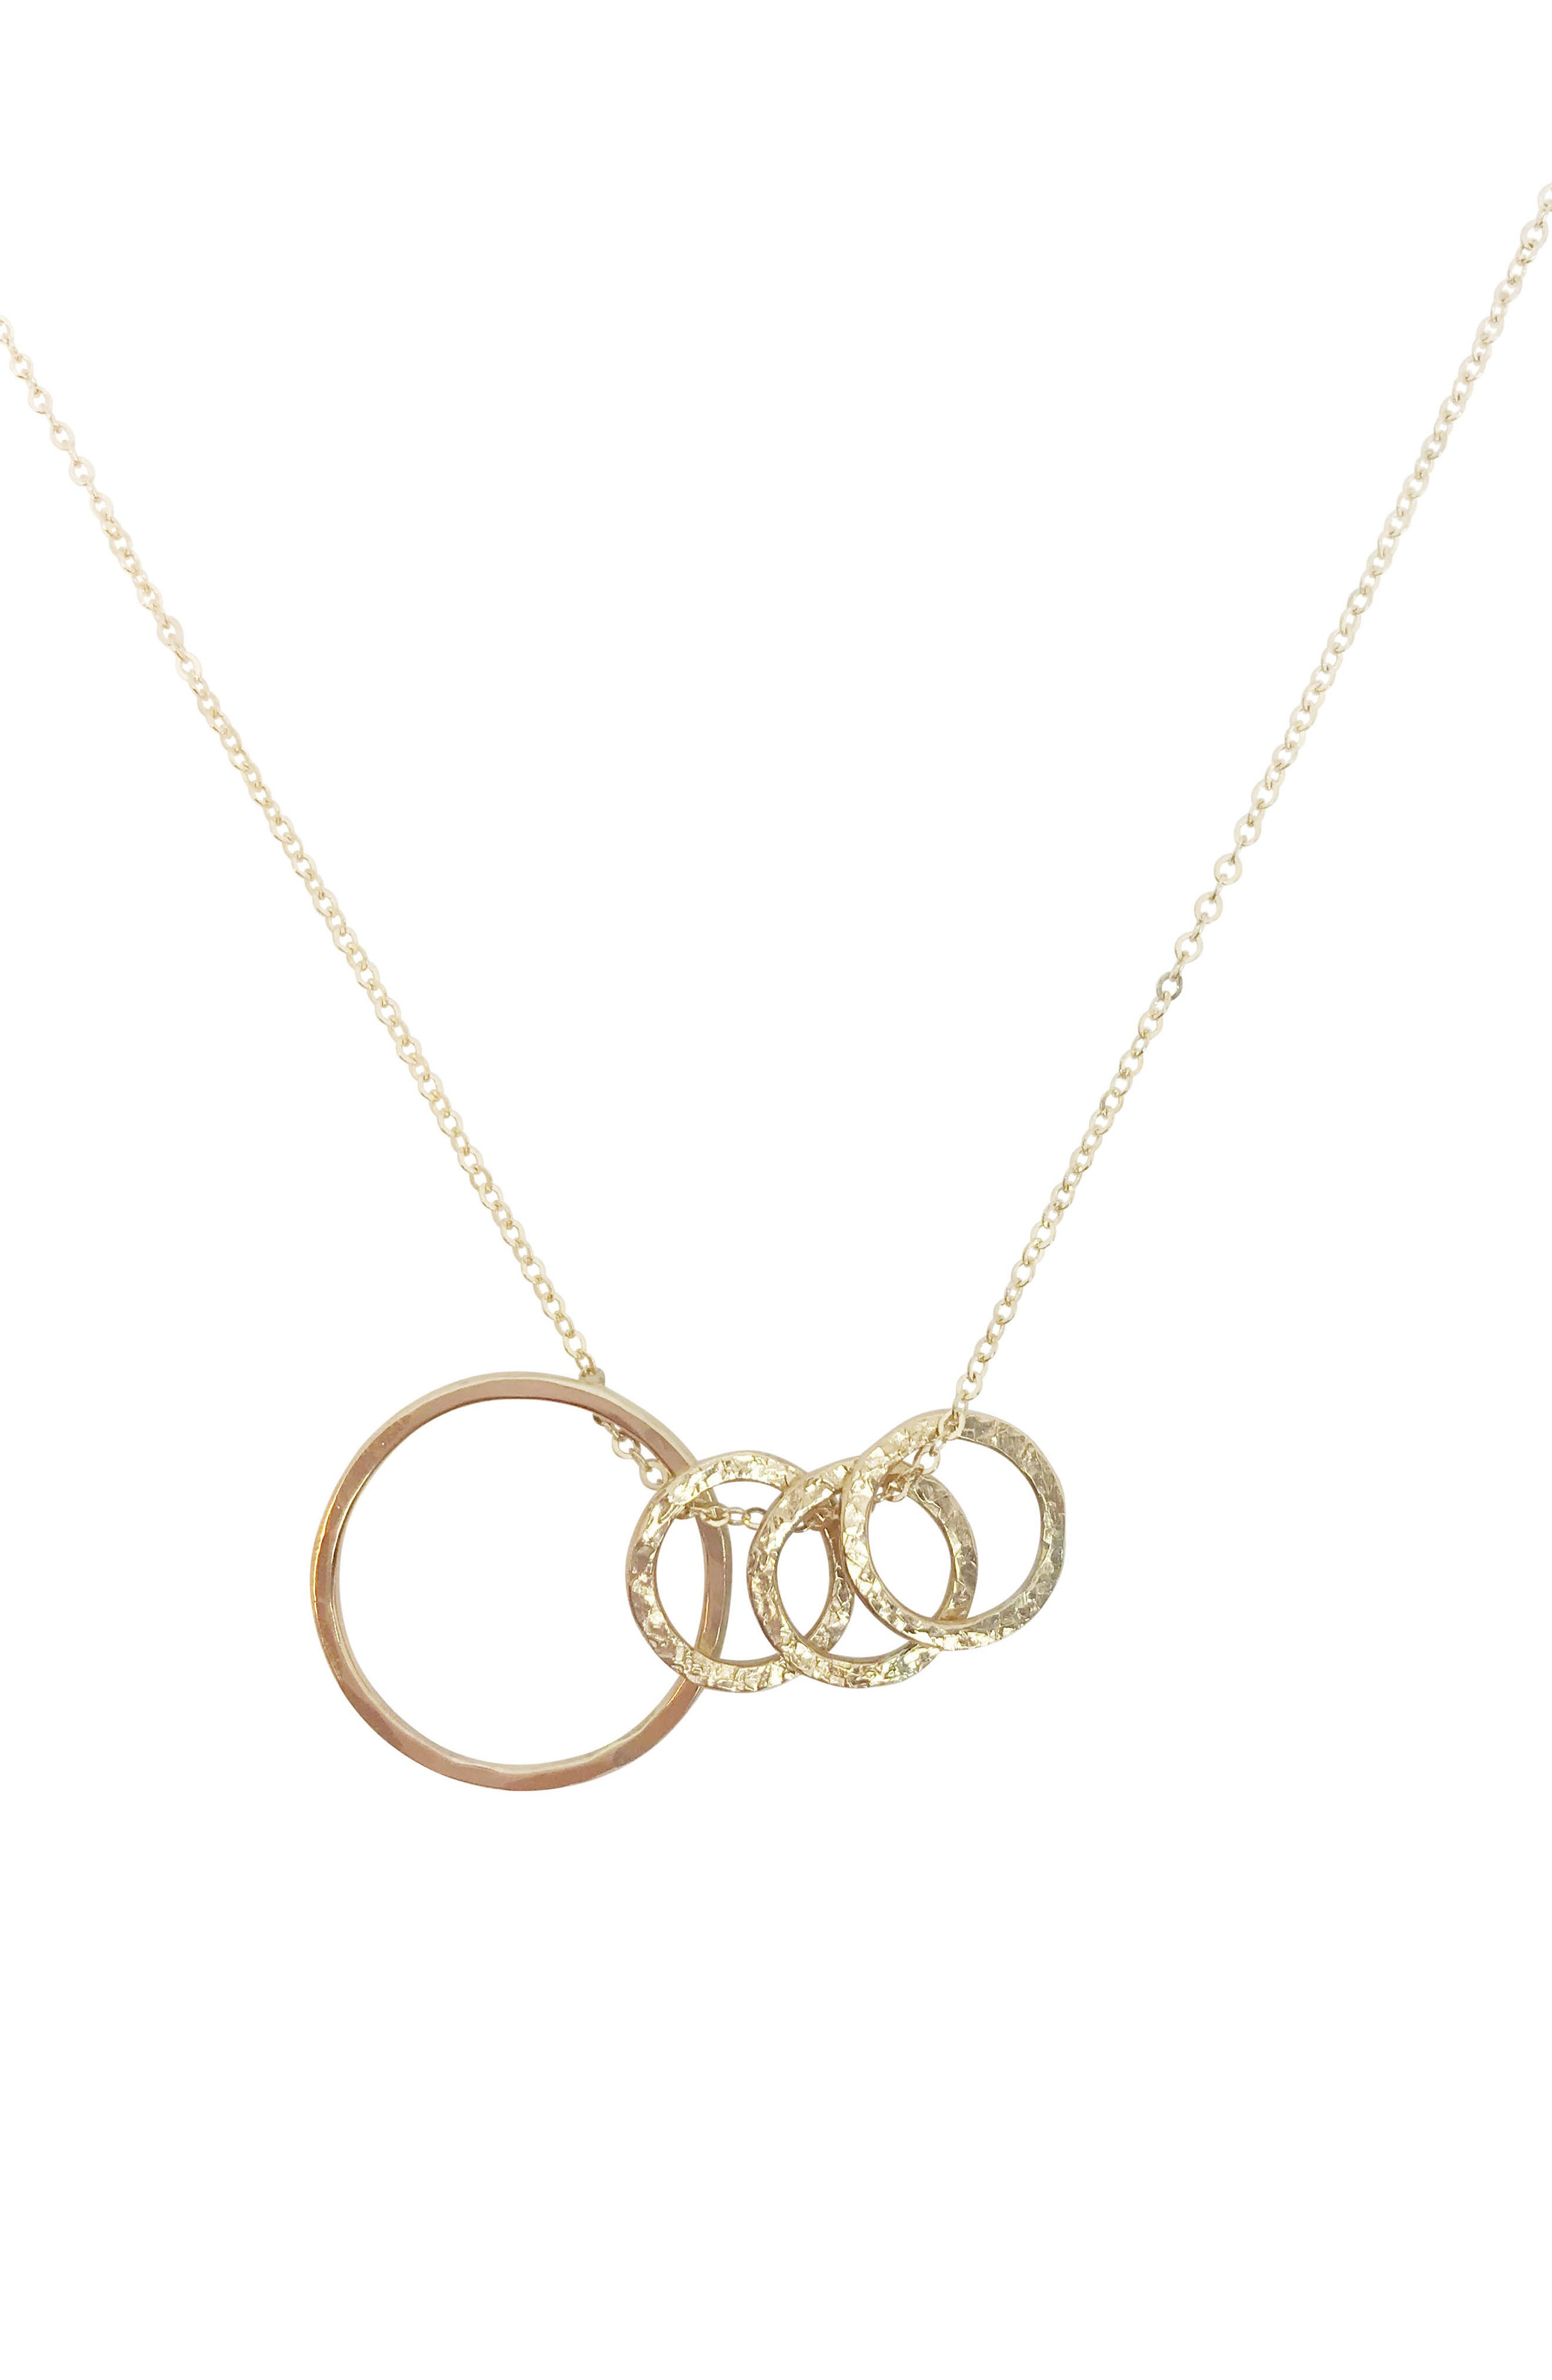 A necklace symbolizing one of life\\\'s most precious bonds features a large, hand-hammered circle interlocked with a trio of smaller circles. Style Name: Nashelle Identity Mama & Child 4-Hoop Necklace. Style Number: 5872647. Available in stores.